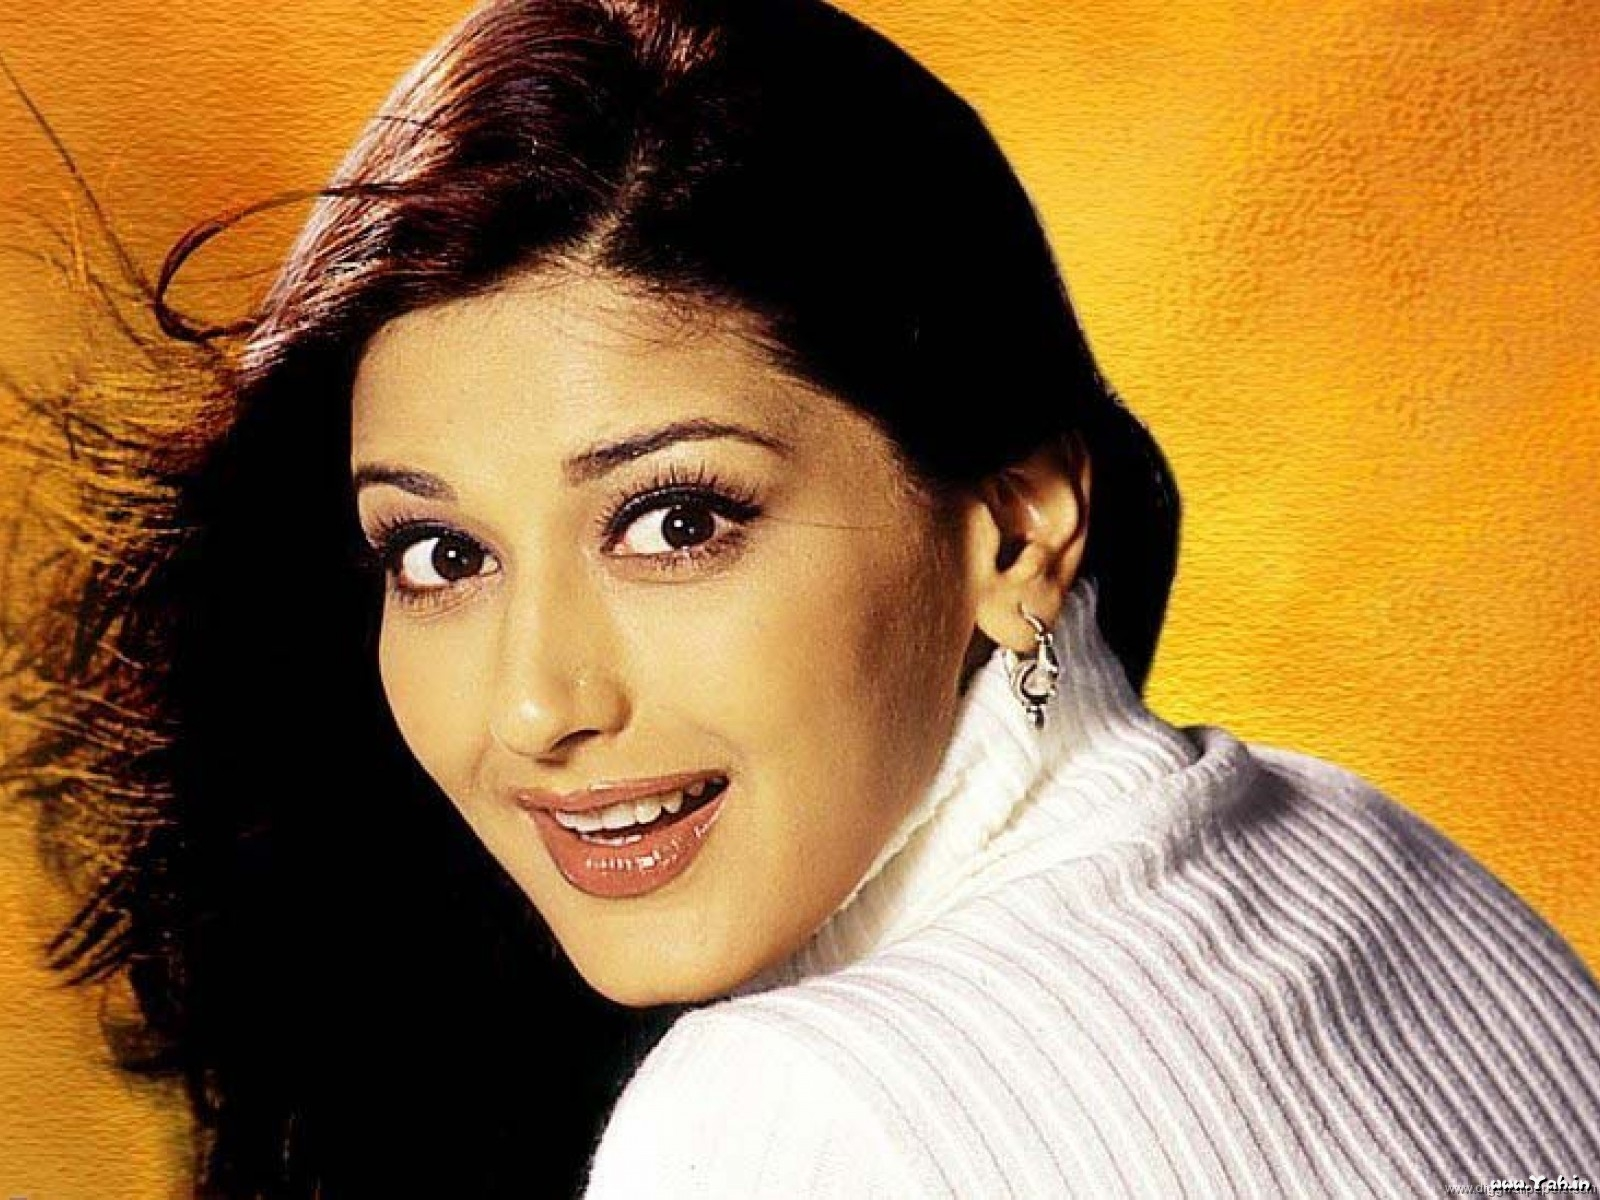 sonali bendre hd wallpapers for desktop | full hd Wallpapers